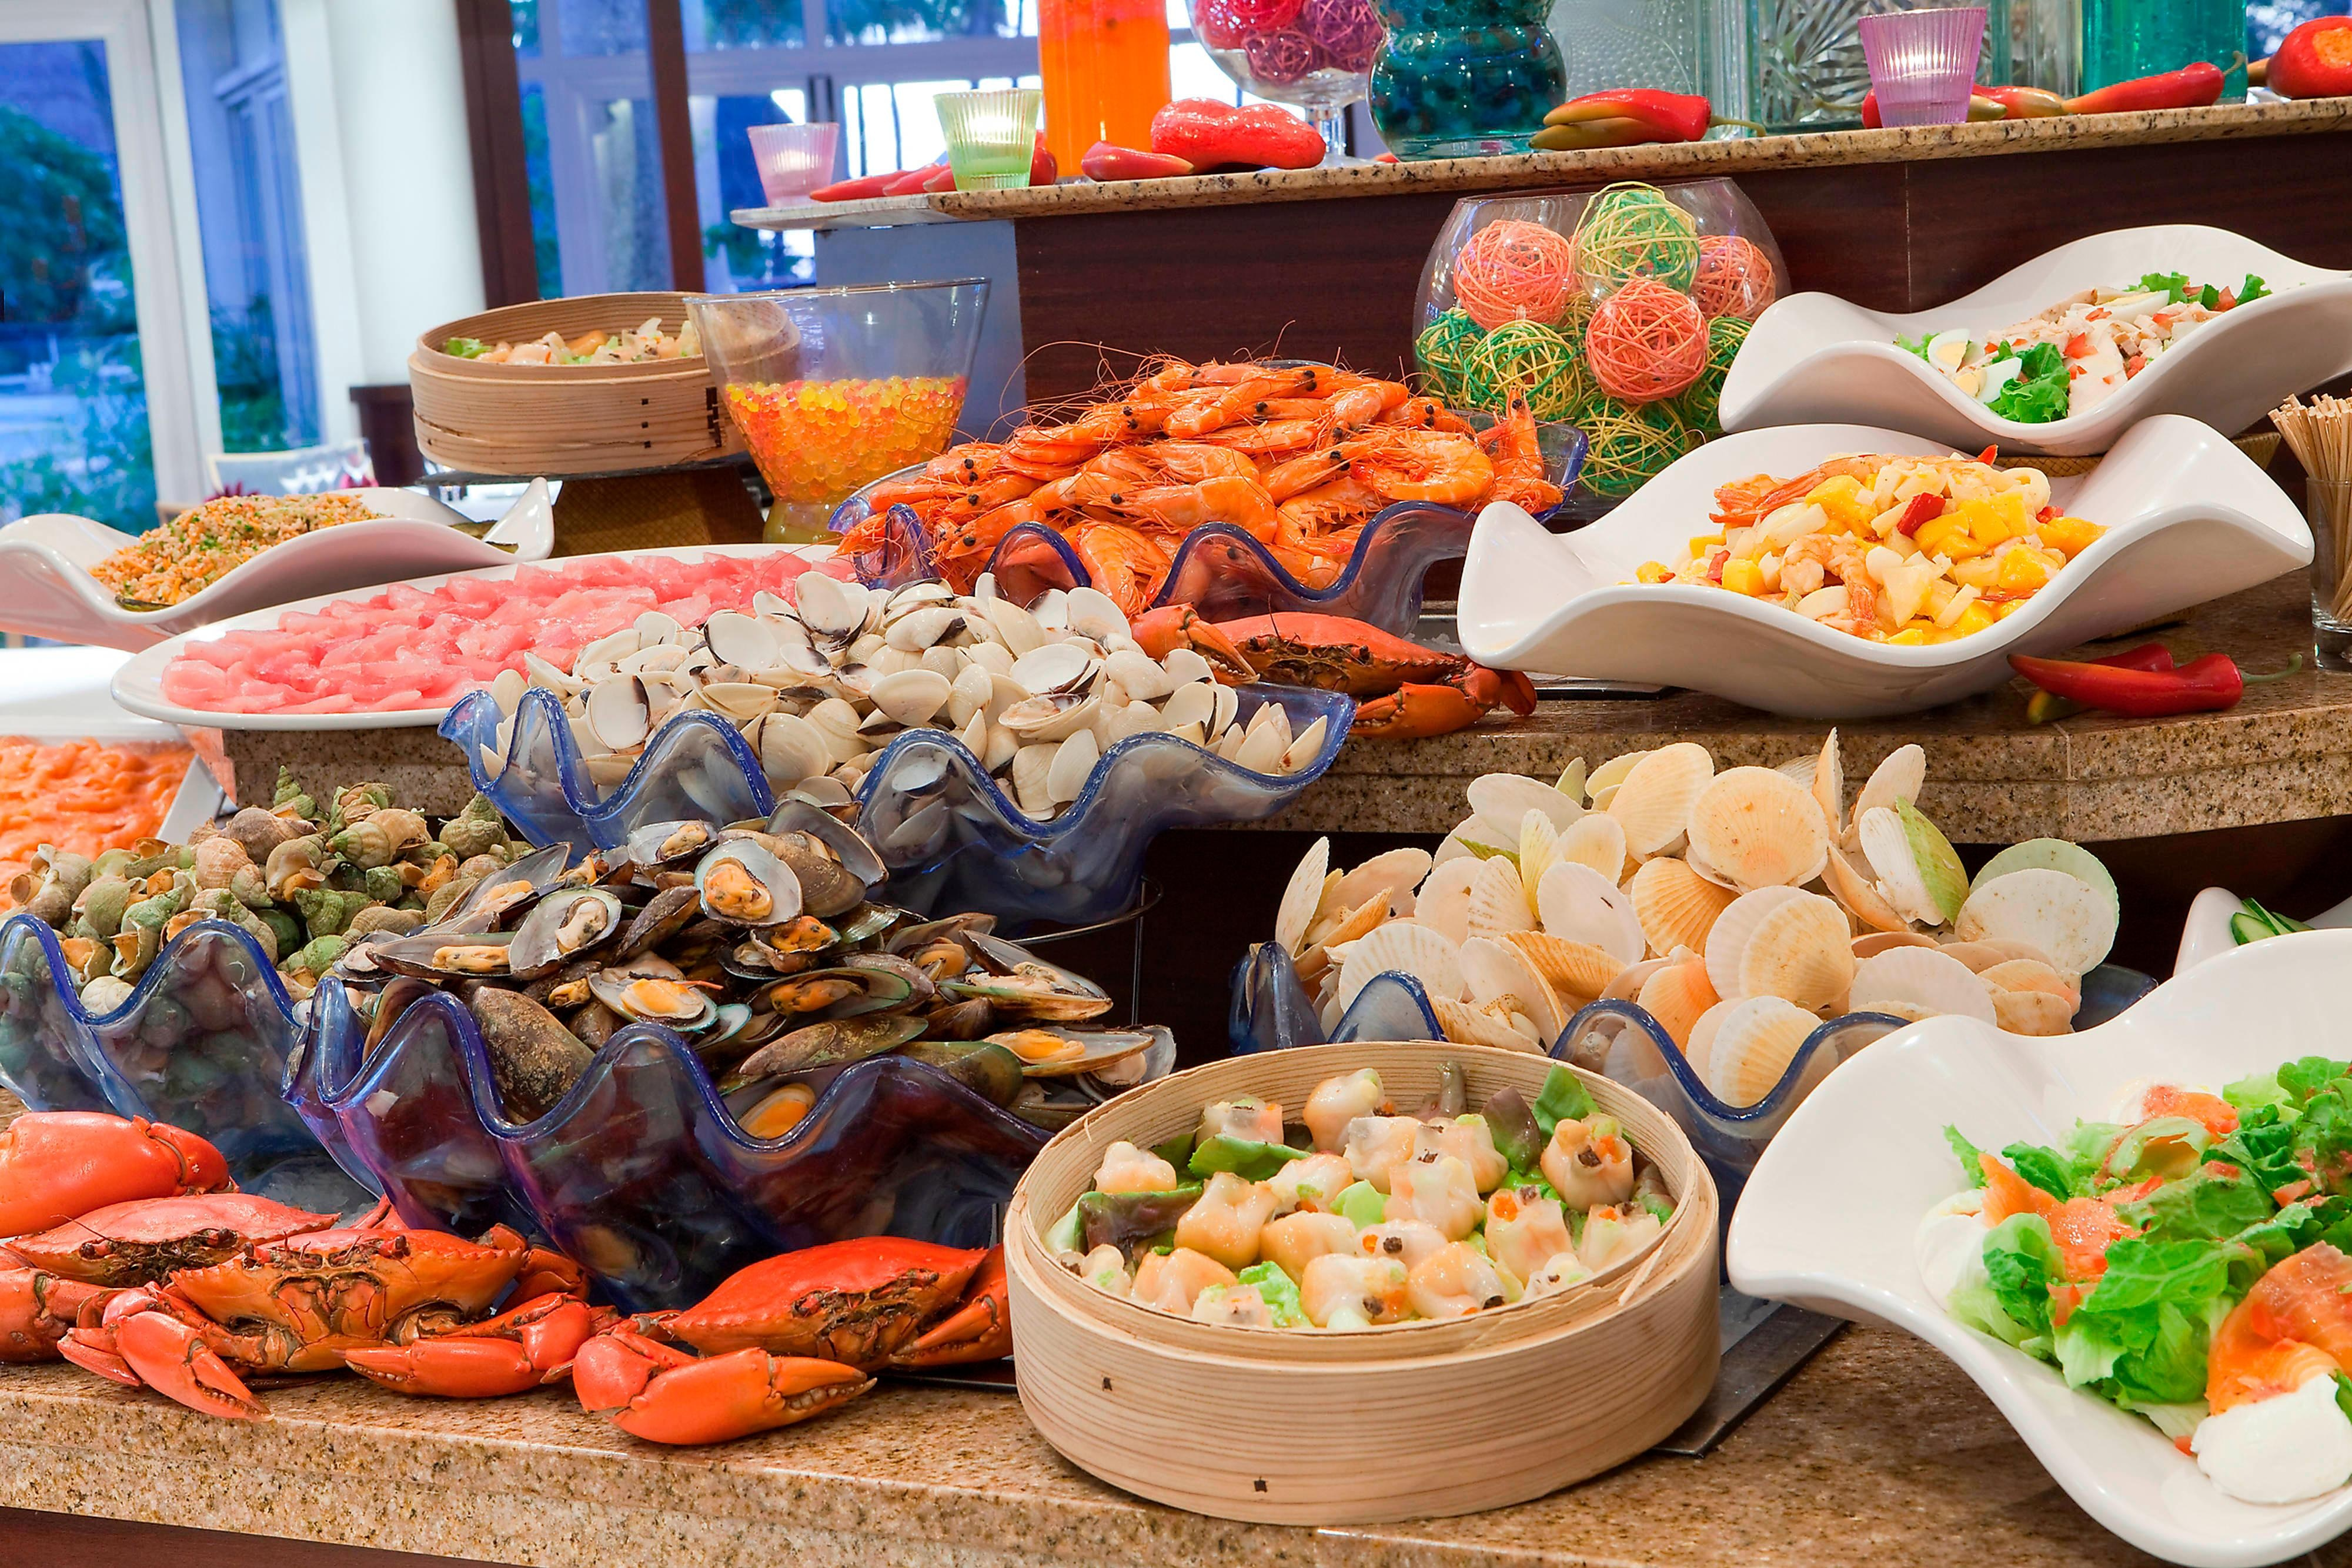 Le Sextant Restaurant - Seafood Buffet